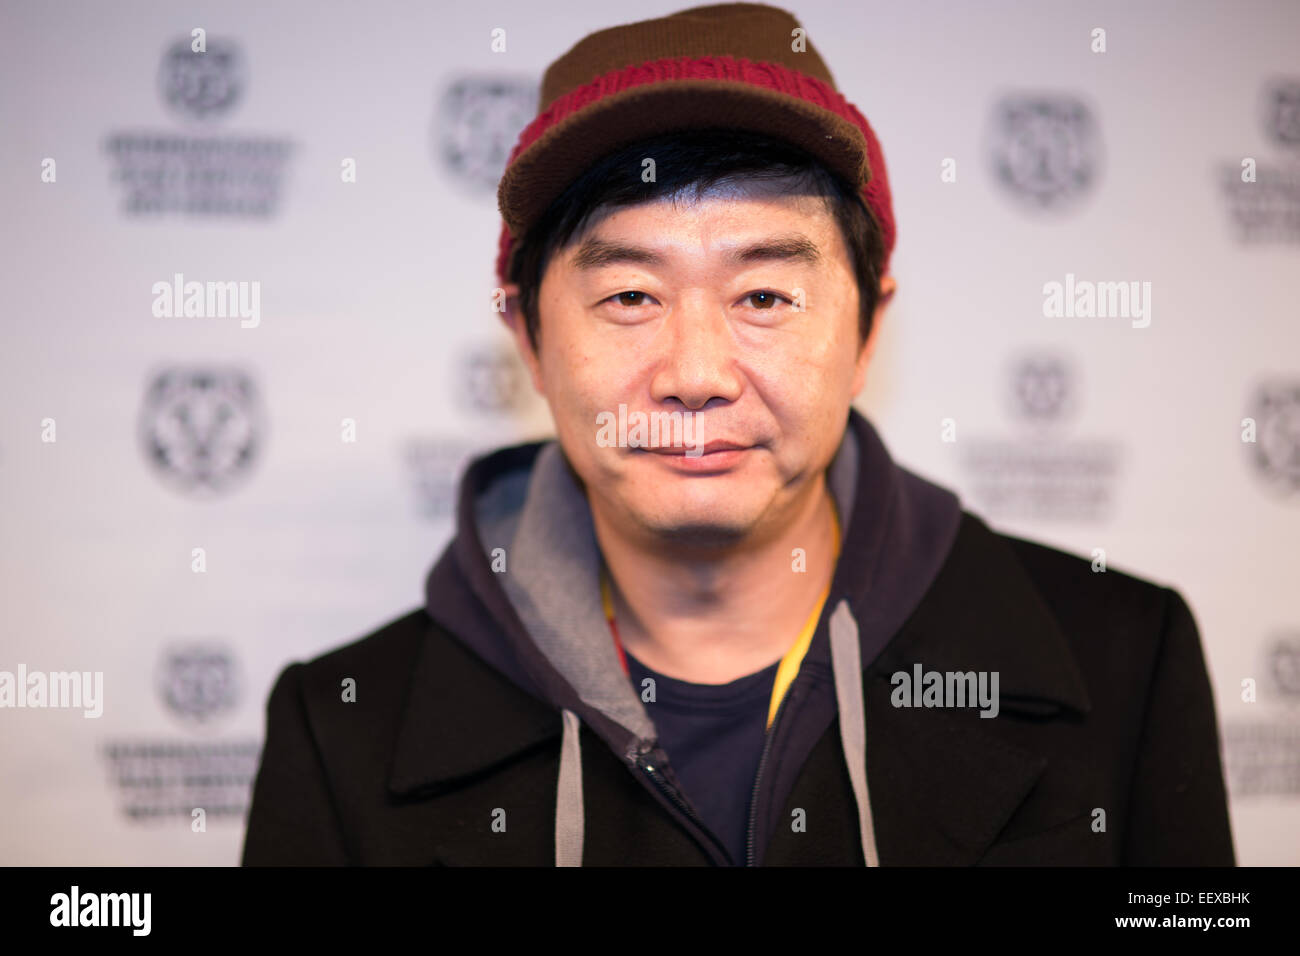 ROTTERDAM, NETHERLANDS - JANUARY 22, 2015: Korean Director Jang Jin